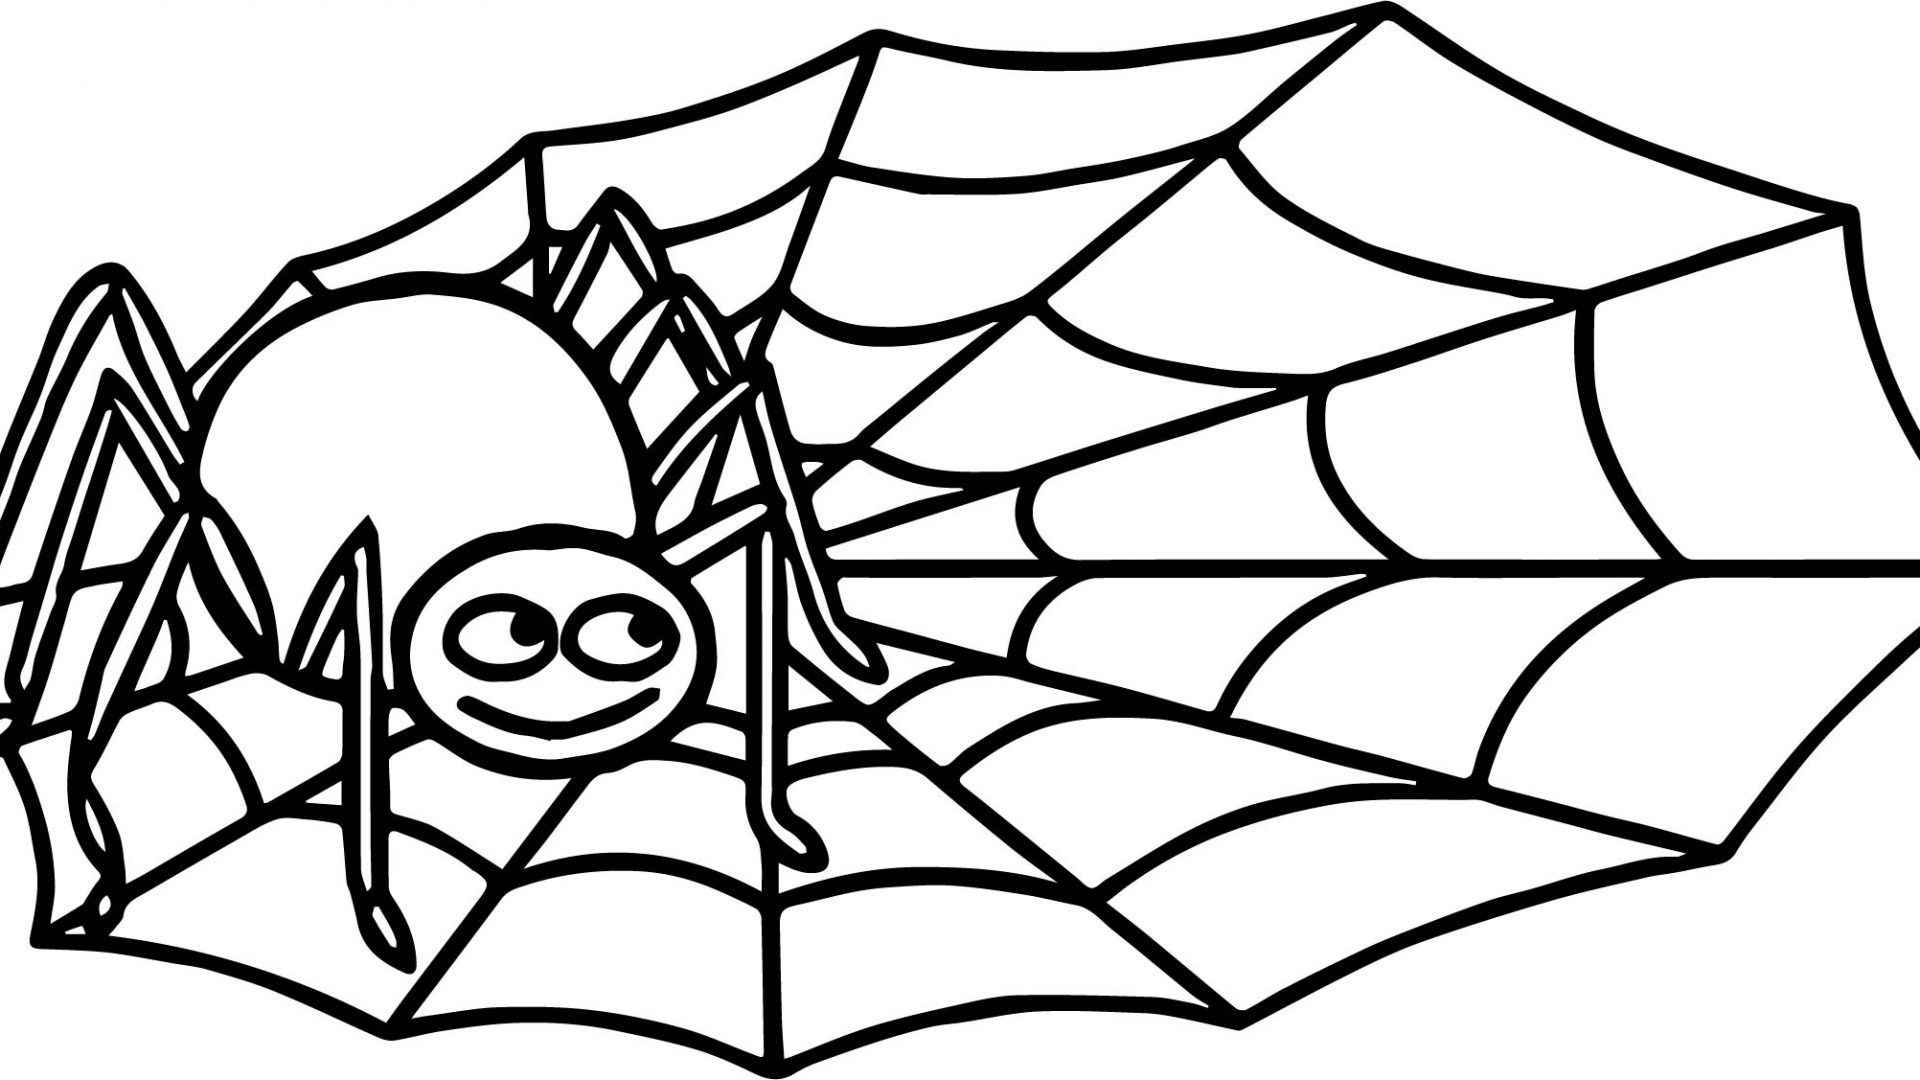 spider coloring book cartoon spider coloring pages at getdrawings free download coloring spider book